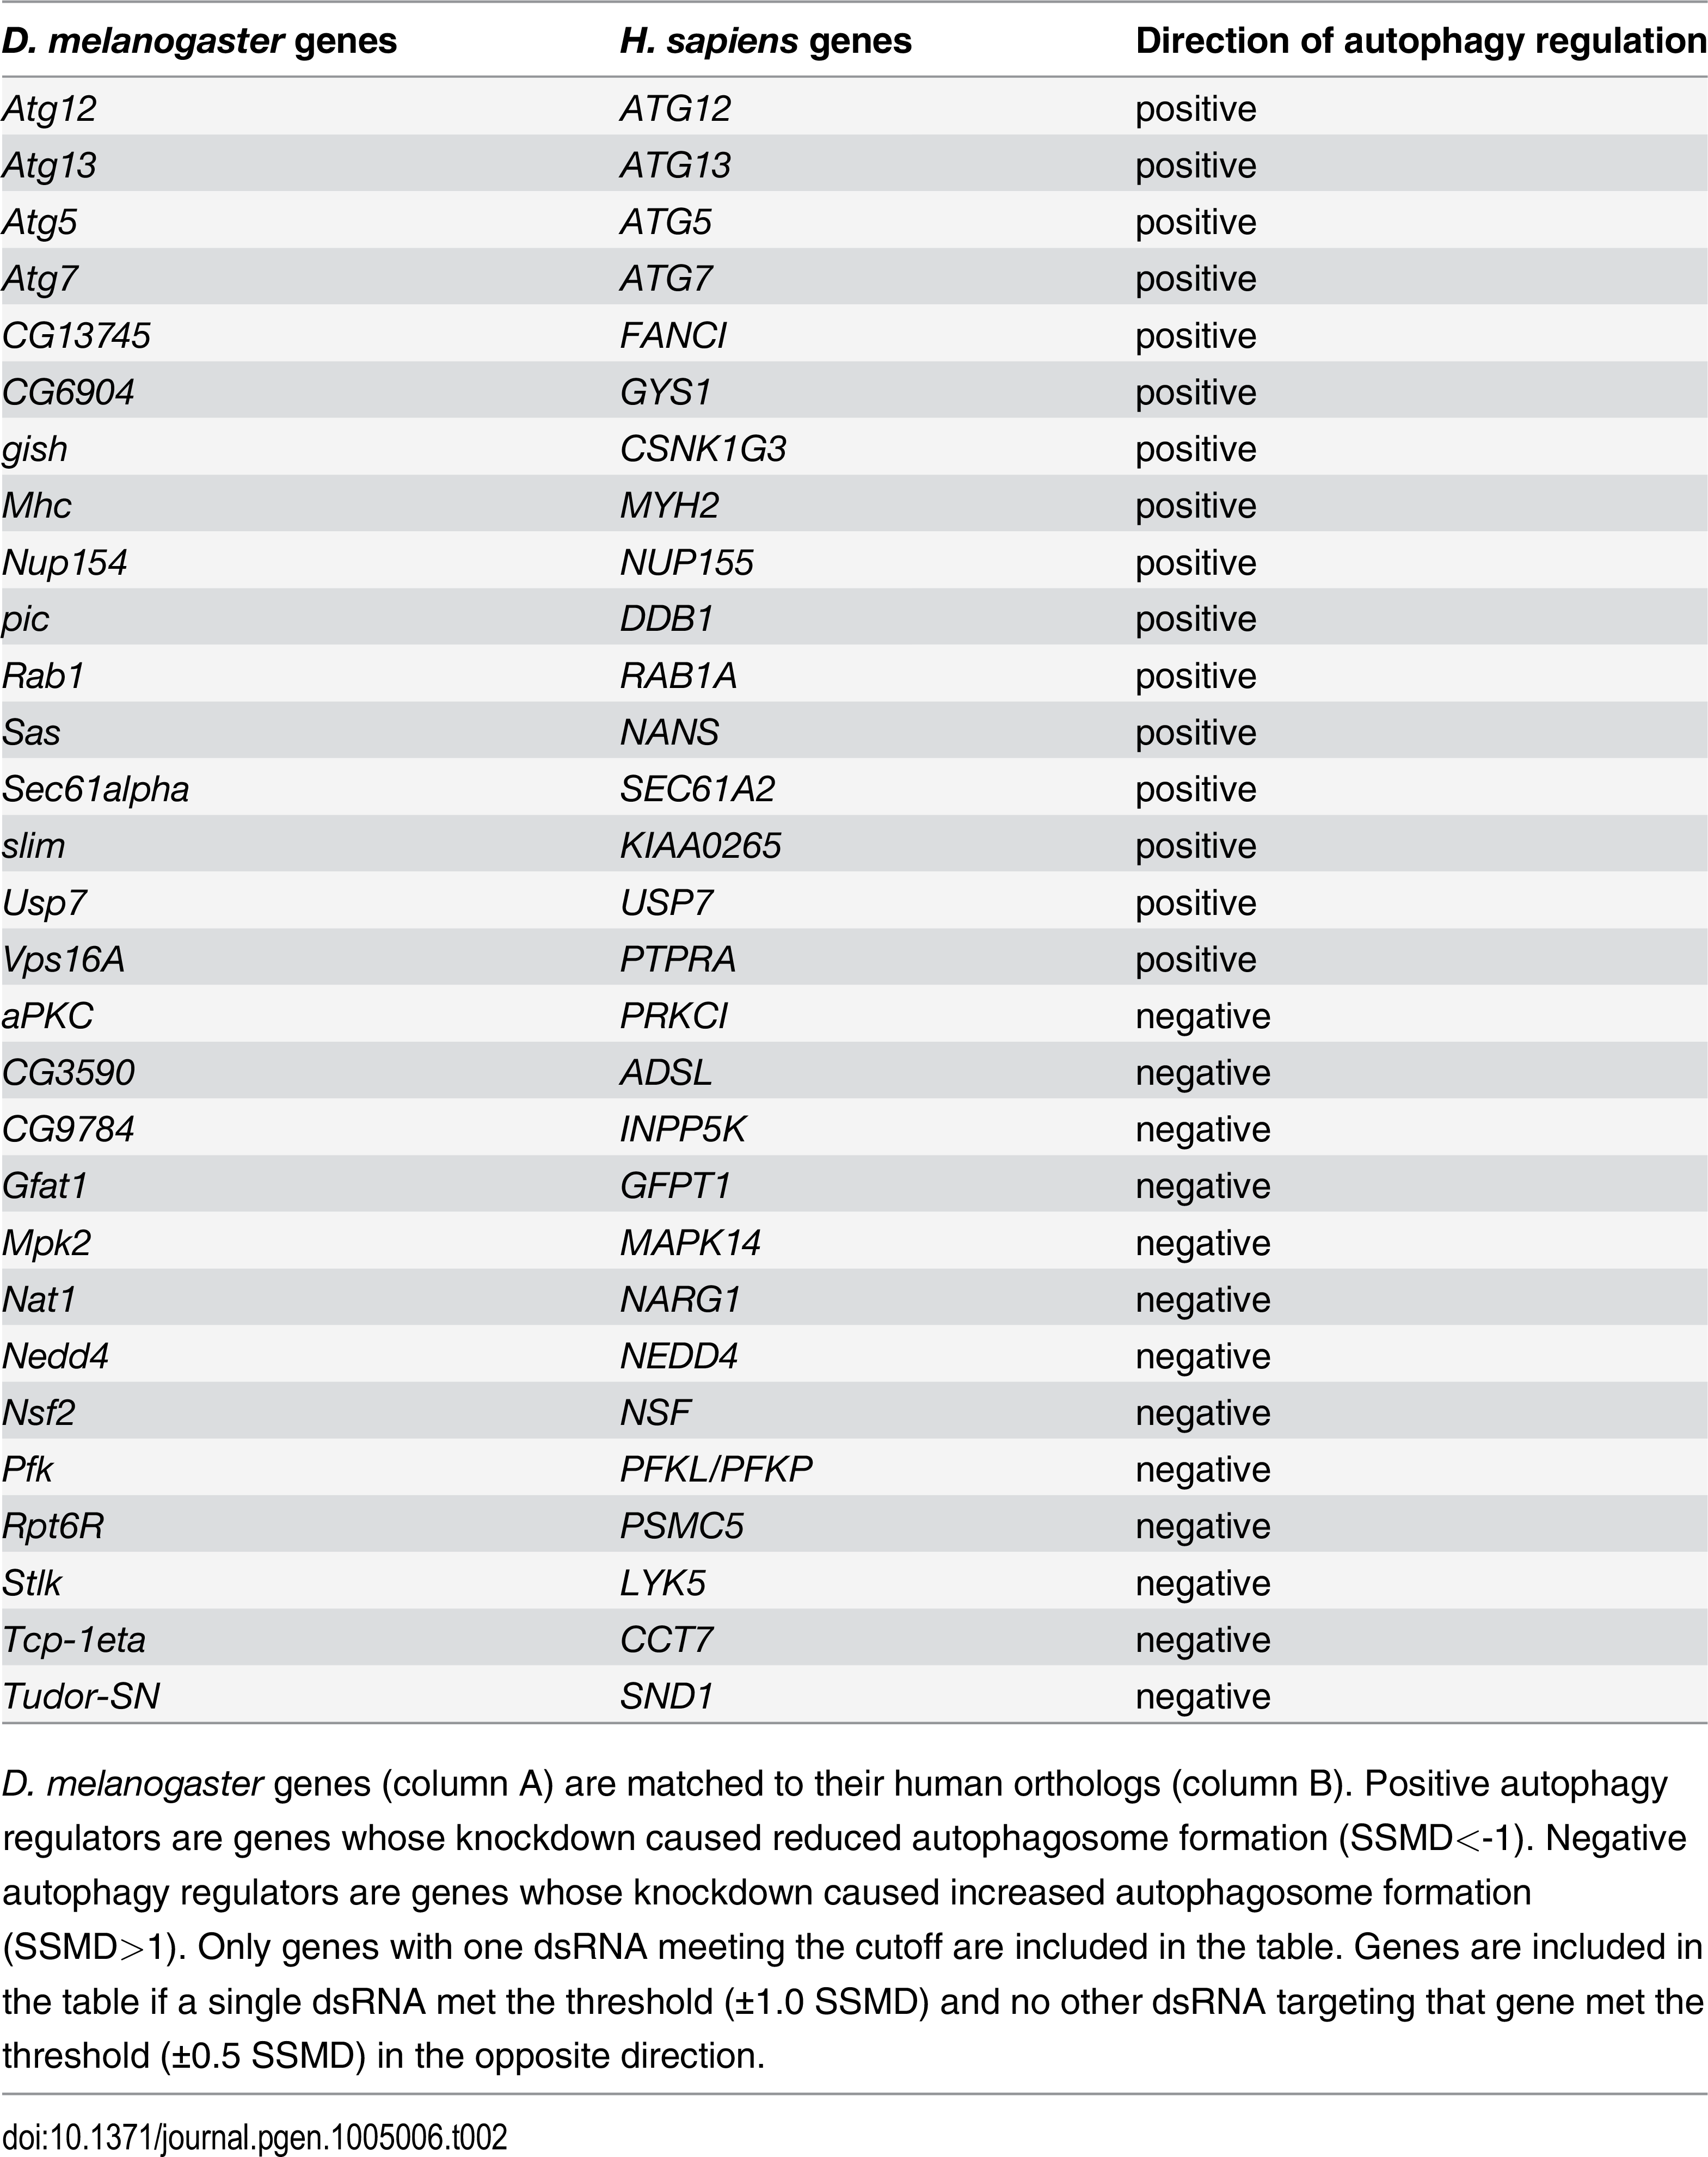 List of genes with one dsRNA scoring in primary culture screen.